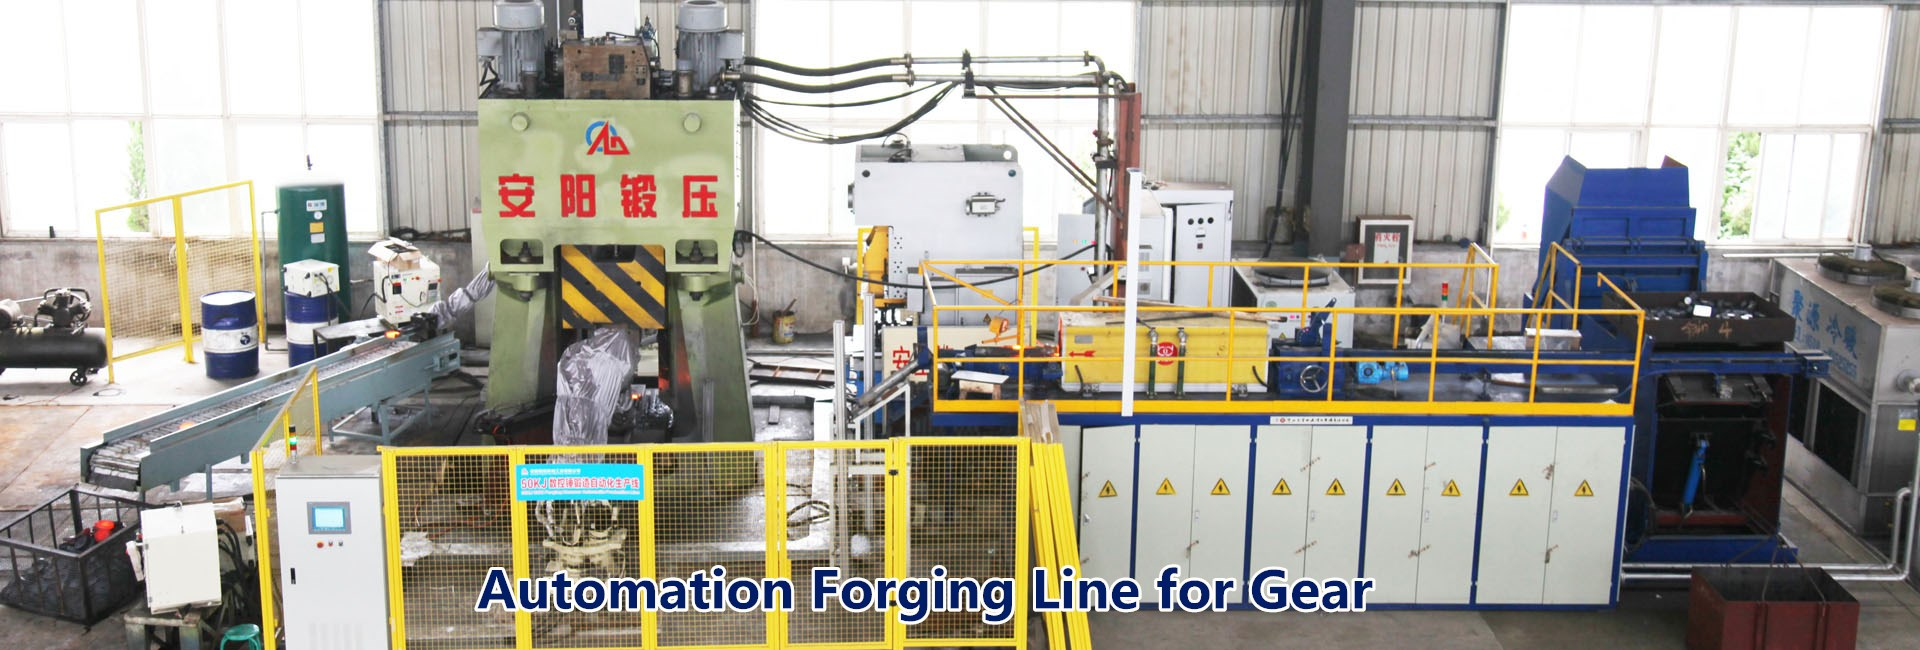 gear automation forging line